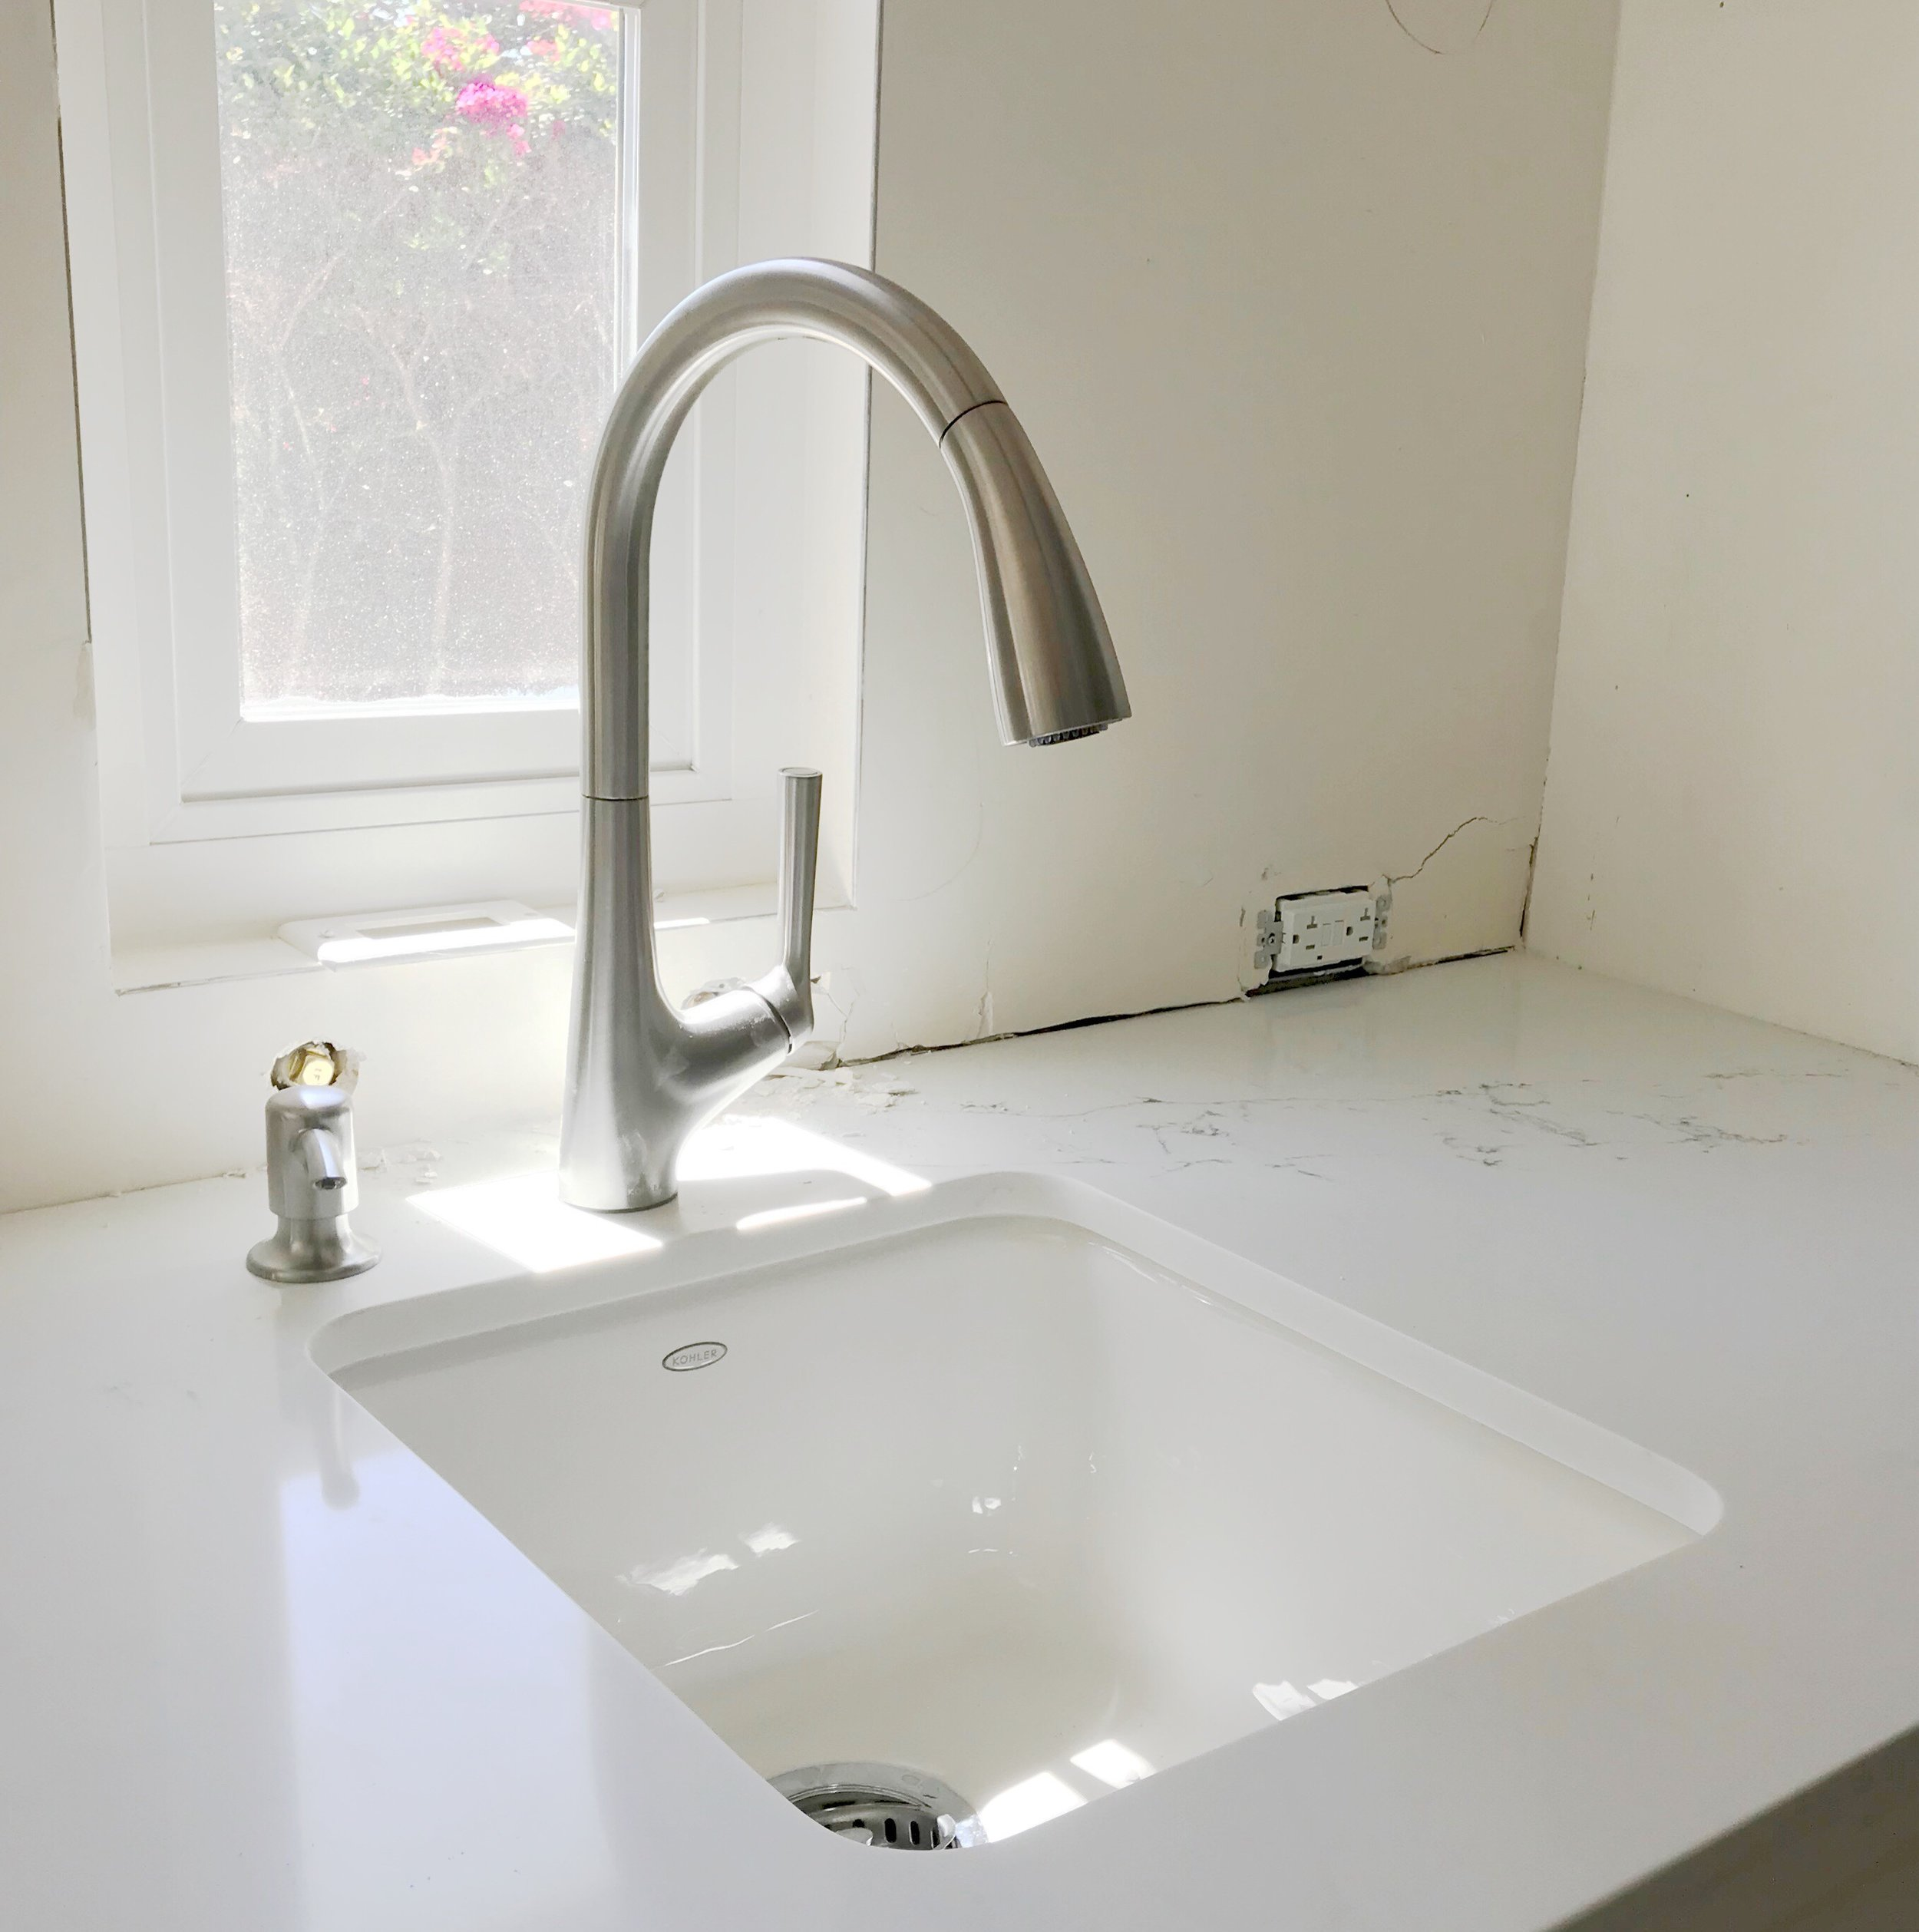 heavy duty kitchen faucet wipes how to choose faucets homestyle the hansgrohe cento semi pro was exactly kind of statement we were looking for only problem that it out stock